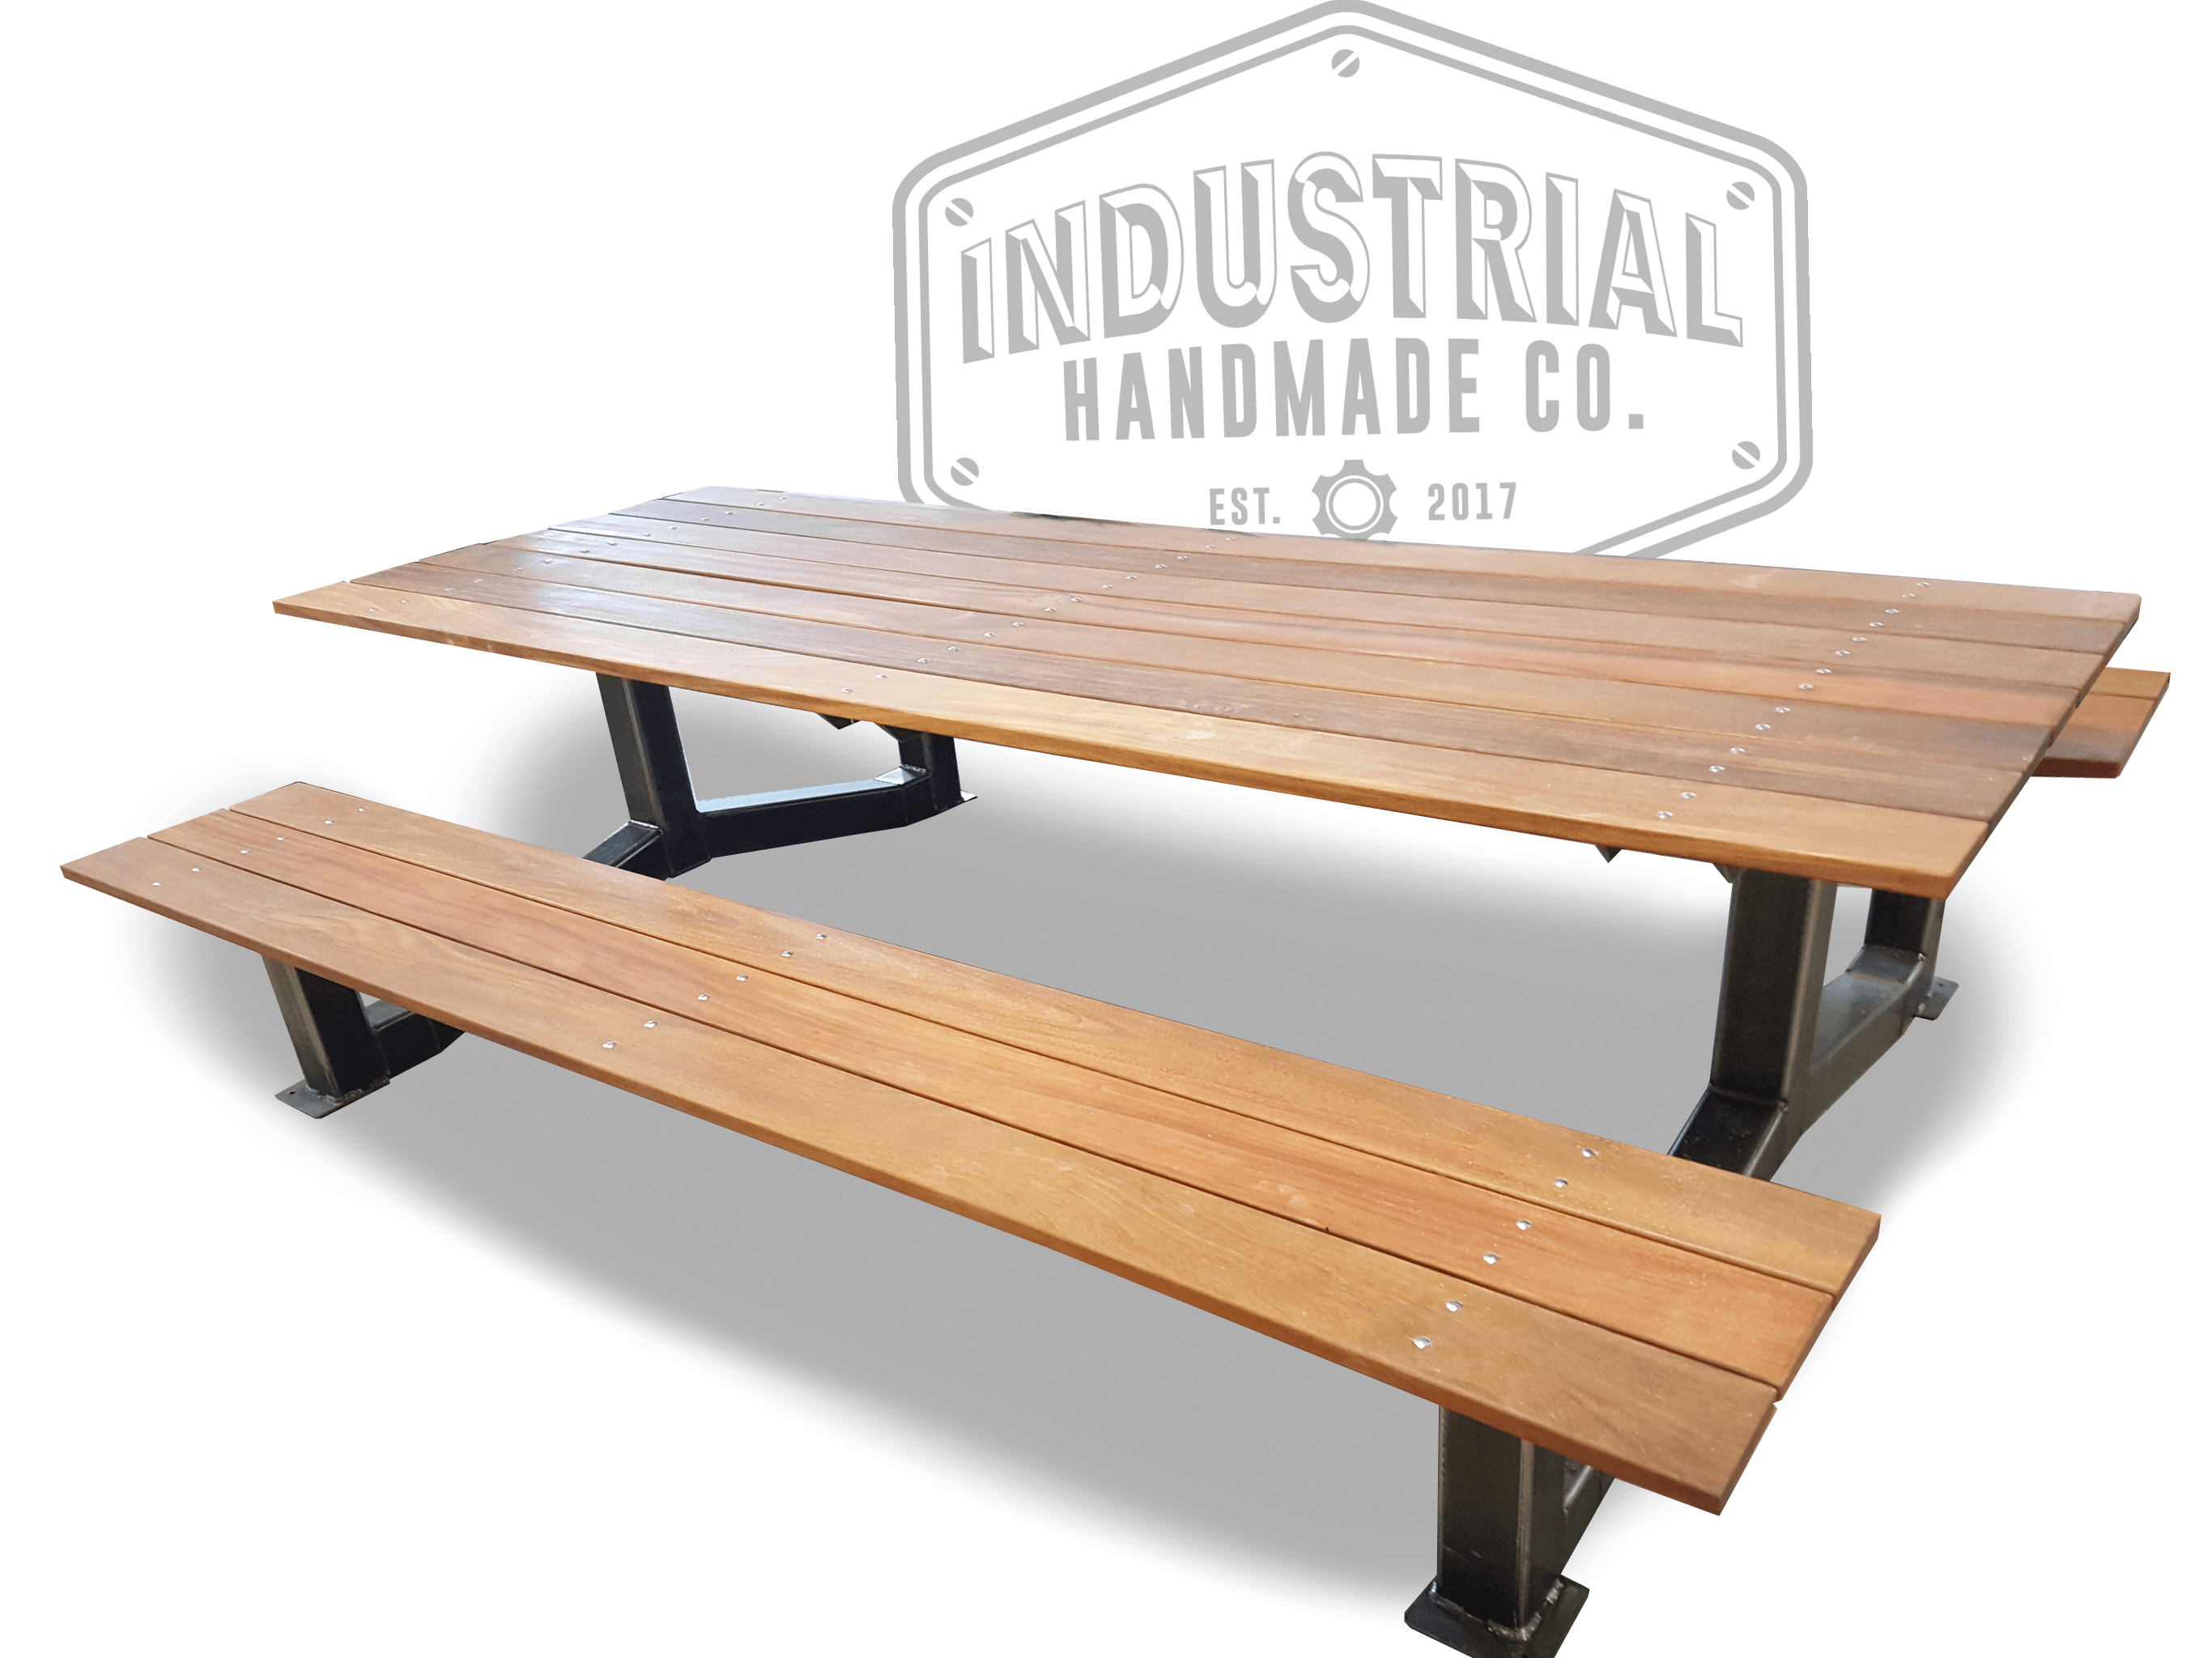 Hand Made Nashville Large Industrial Outdoor Picnic Table By - Large outdoor picnic table